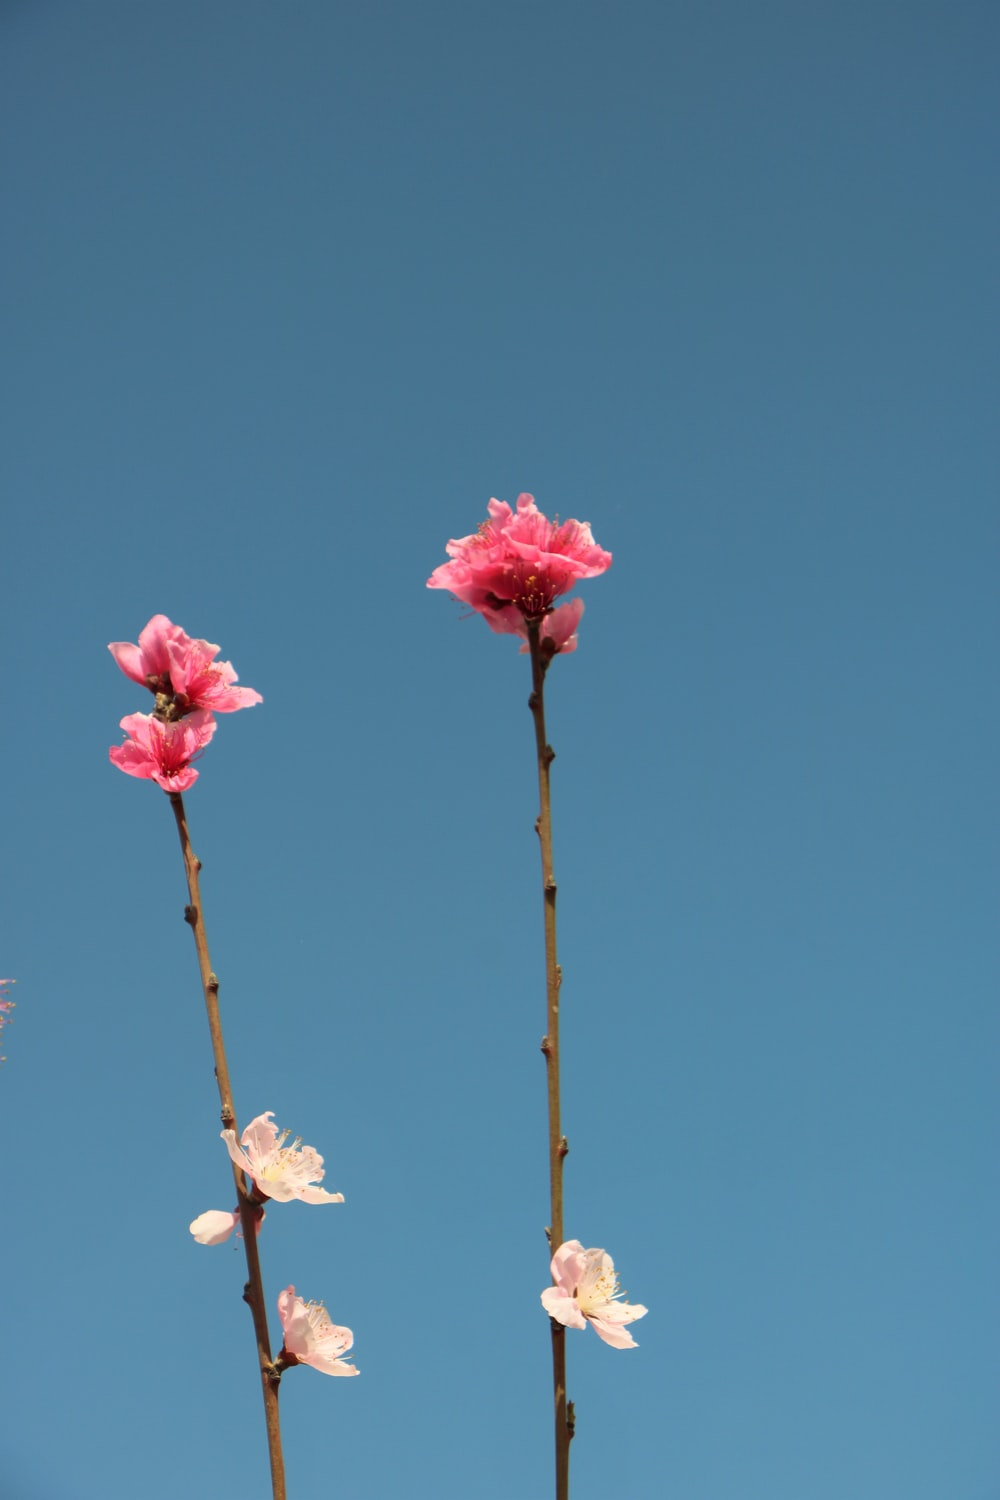 pink and white flowers on brown stem